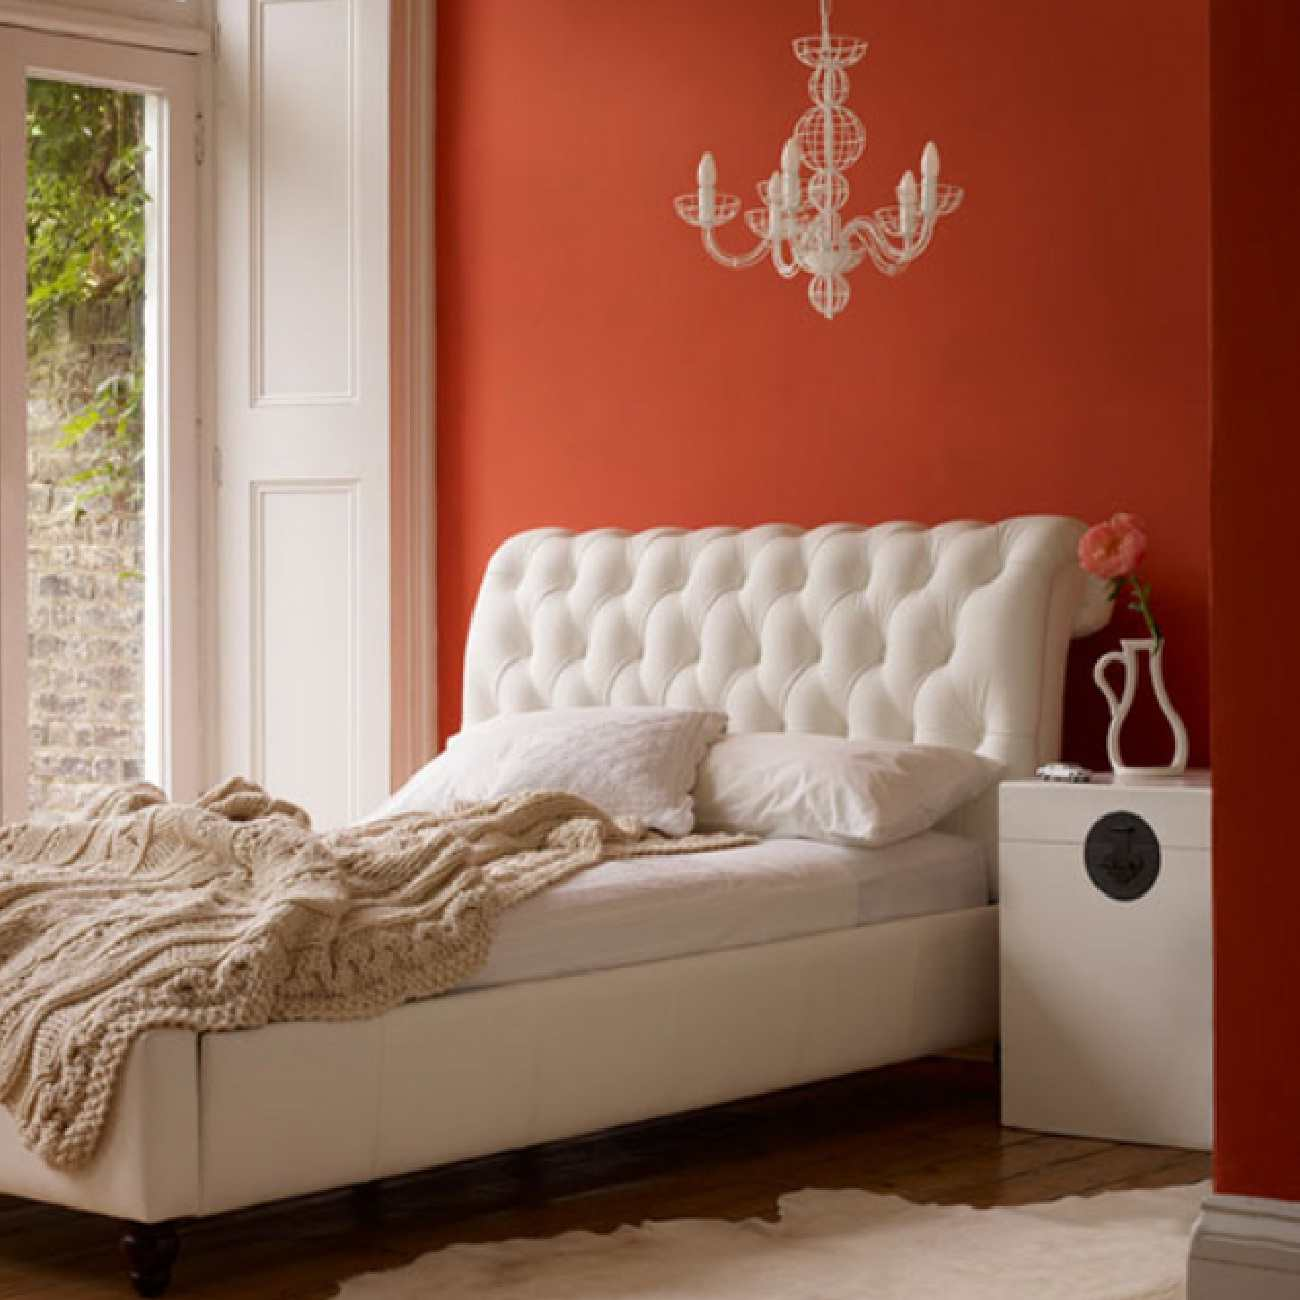 Bedroom-Interior-Design-Ideas Fabulous Orange Bedroom Decorating Ideas and Designs